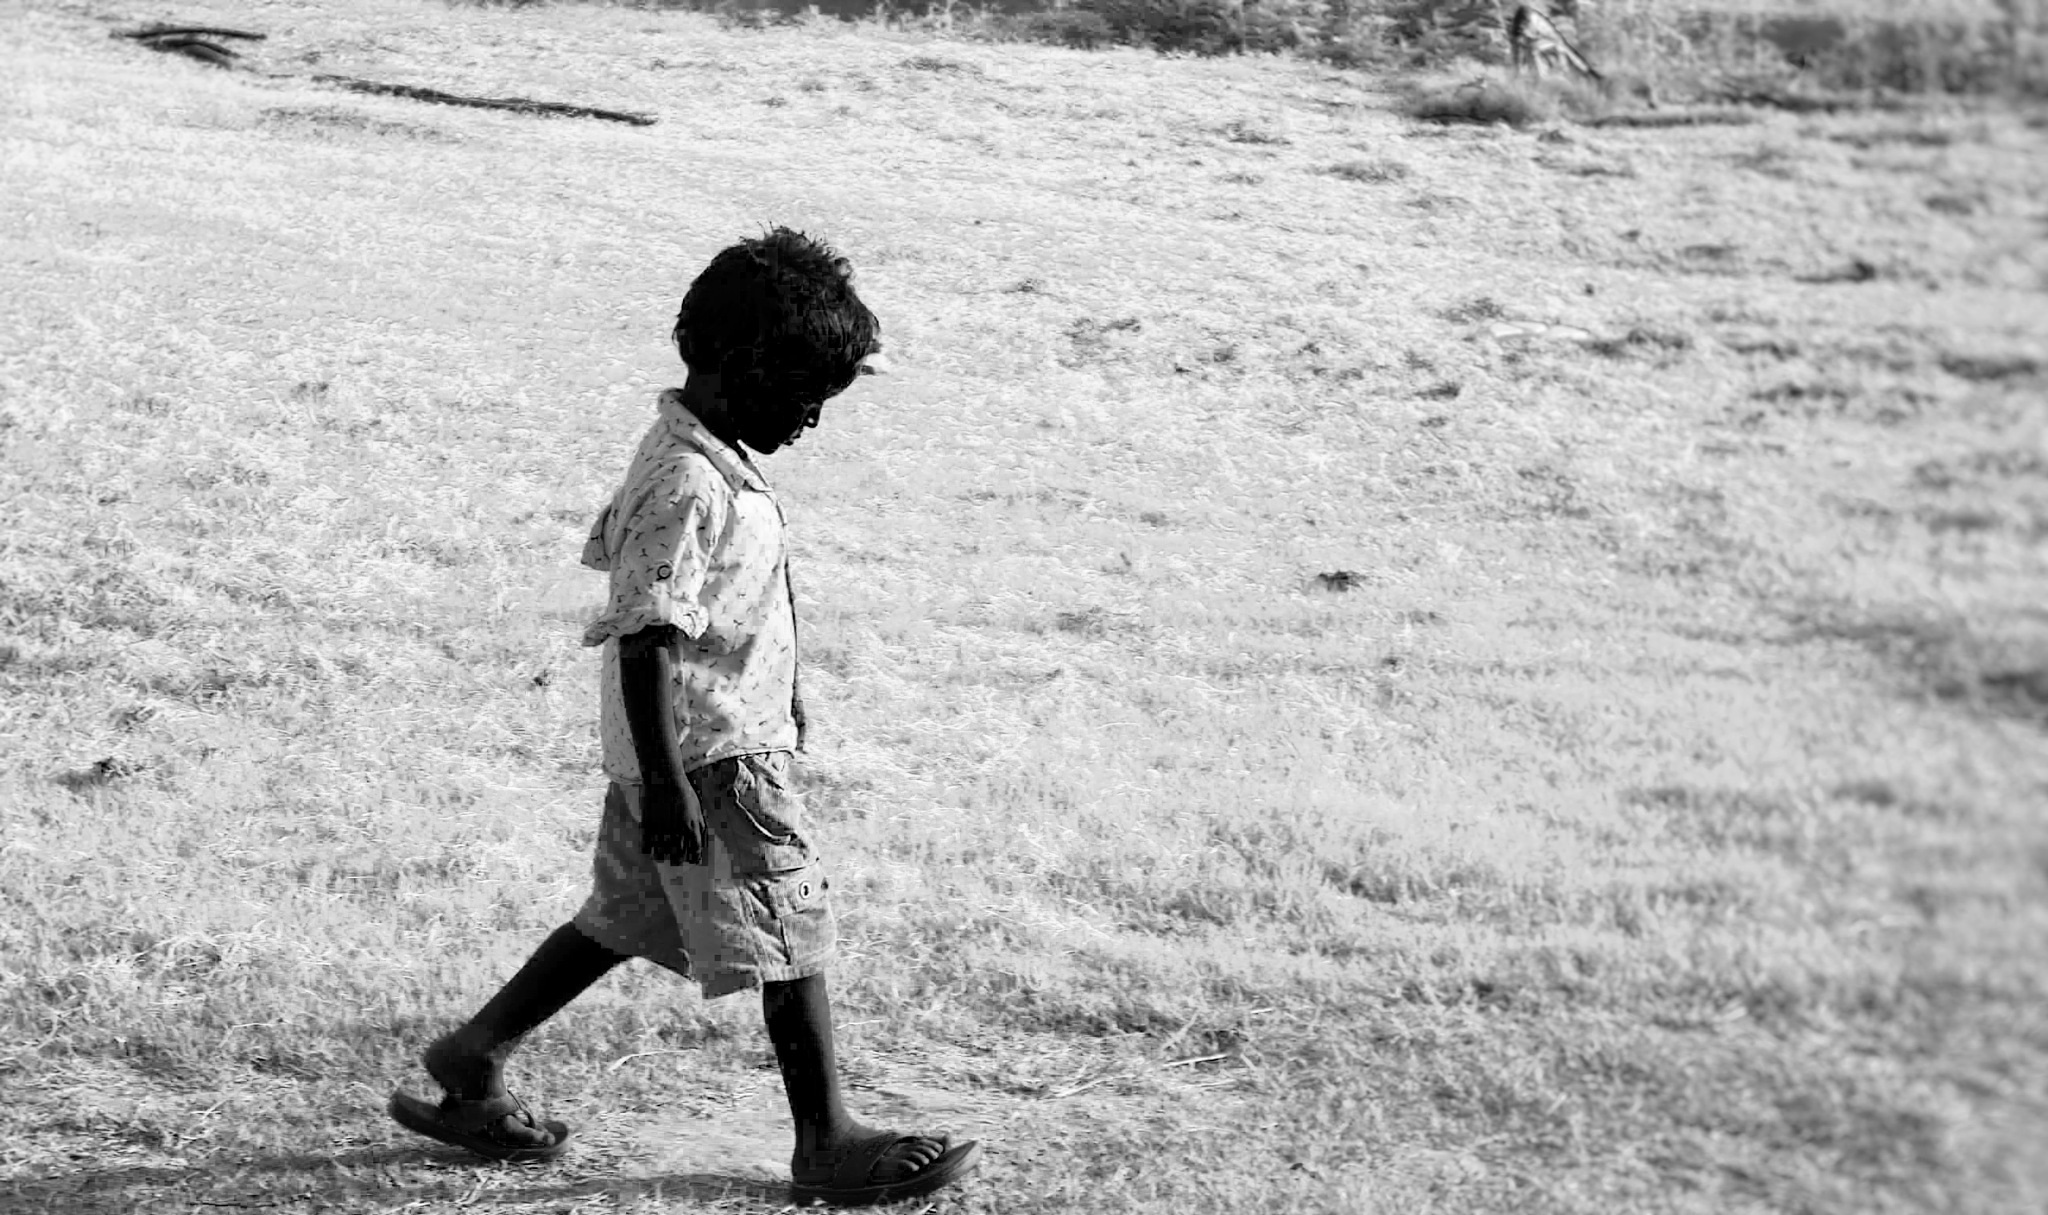 The sad child by Mohit_kumarofficial